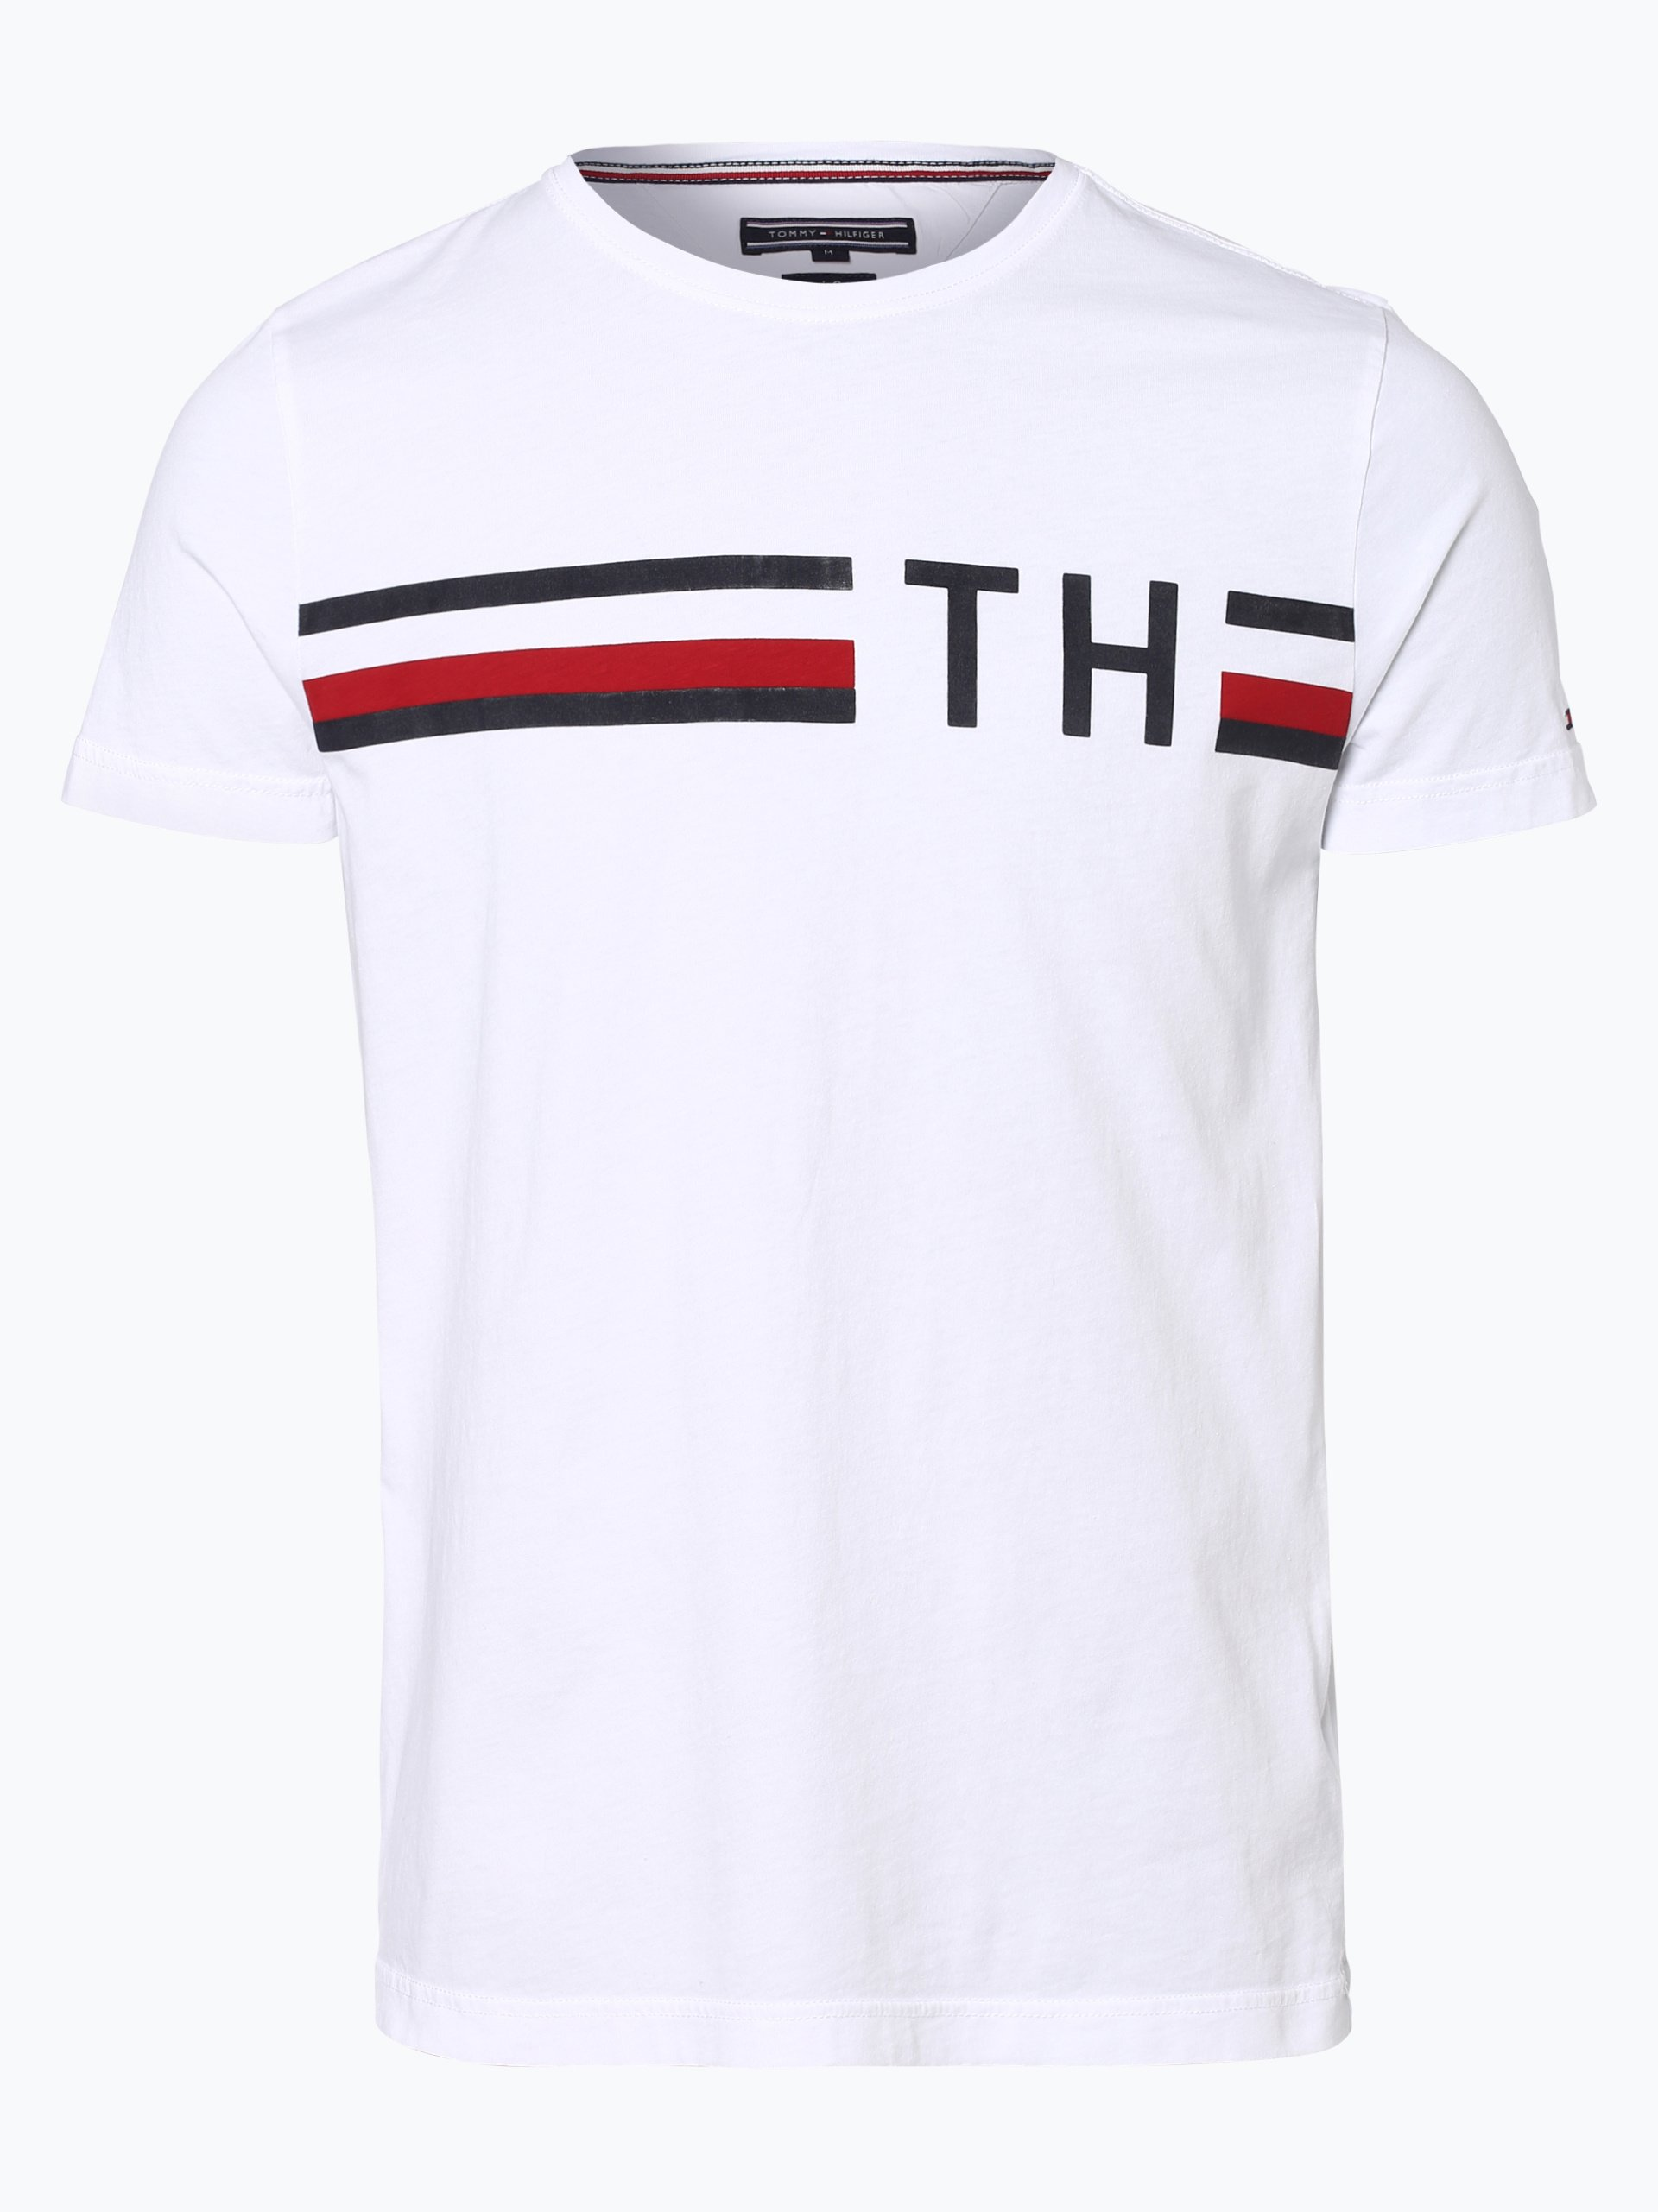 tommy hilfiger herren t shirt wei gemustert online kaufen. Black Bedroom Furniture Sets. Home Design Ideas